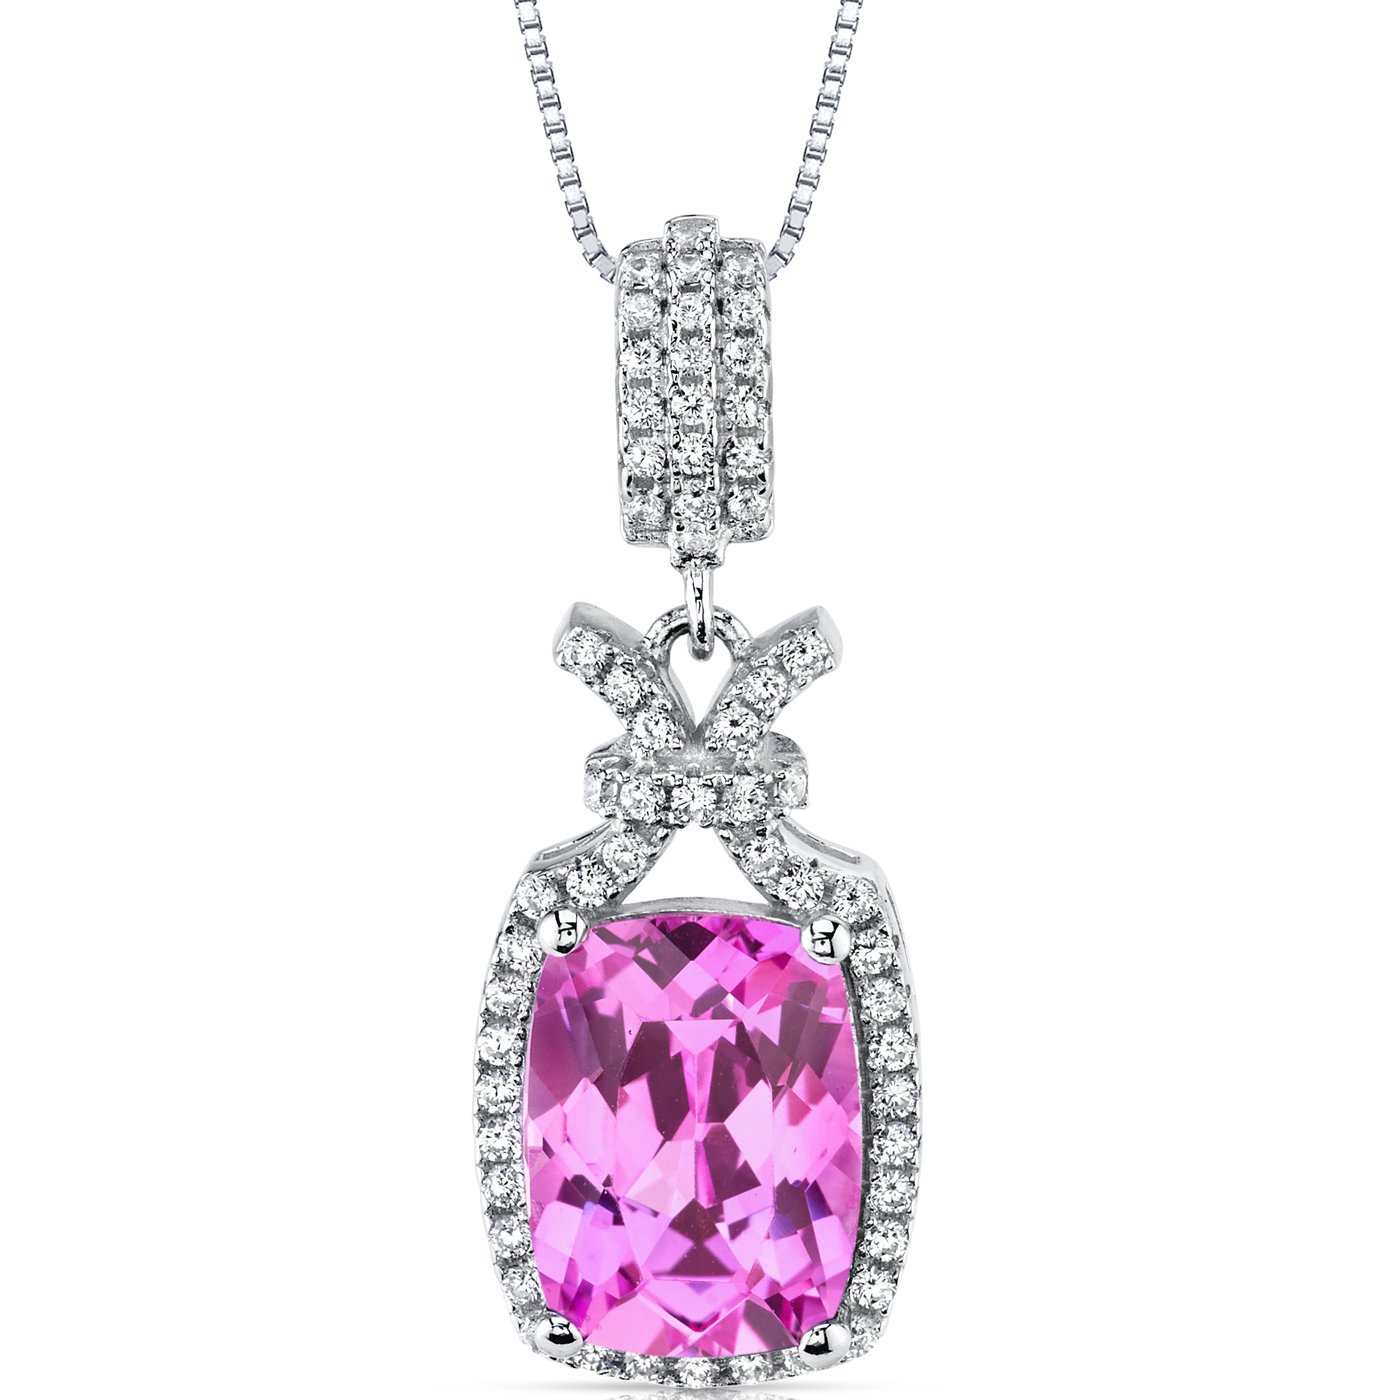 5.00 Carats Created Pink Sapphire Pendant Necklace Sterling Silver Cushion Cut